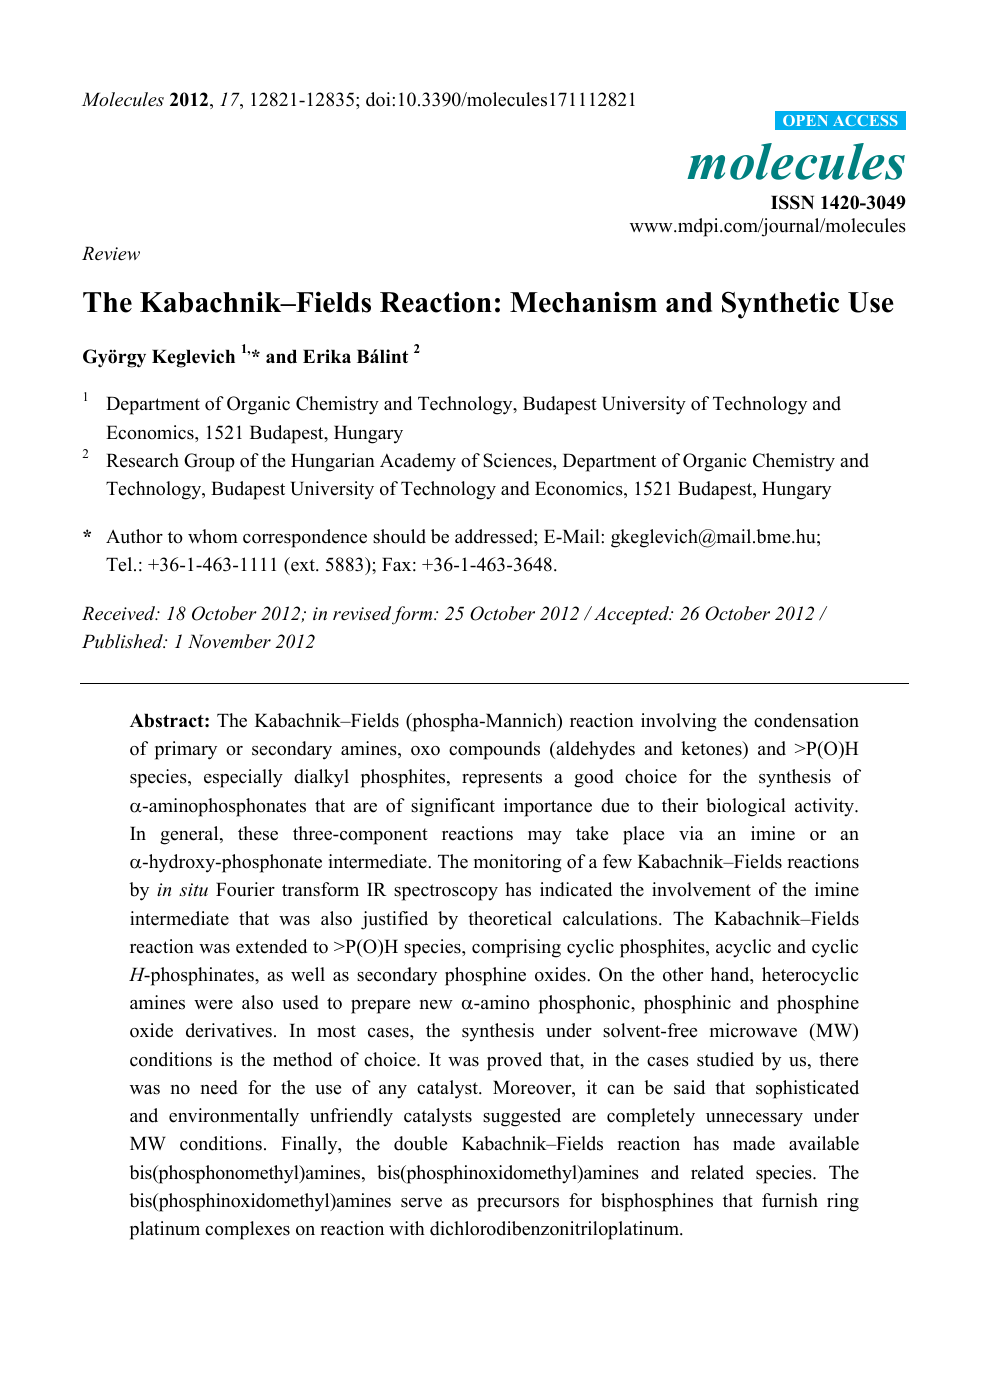 The Kabachnik–Fields Reaction: Mechanism and Synthetic Use